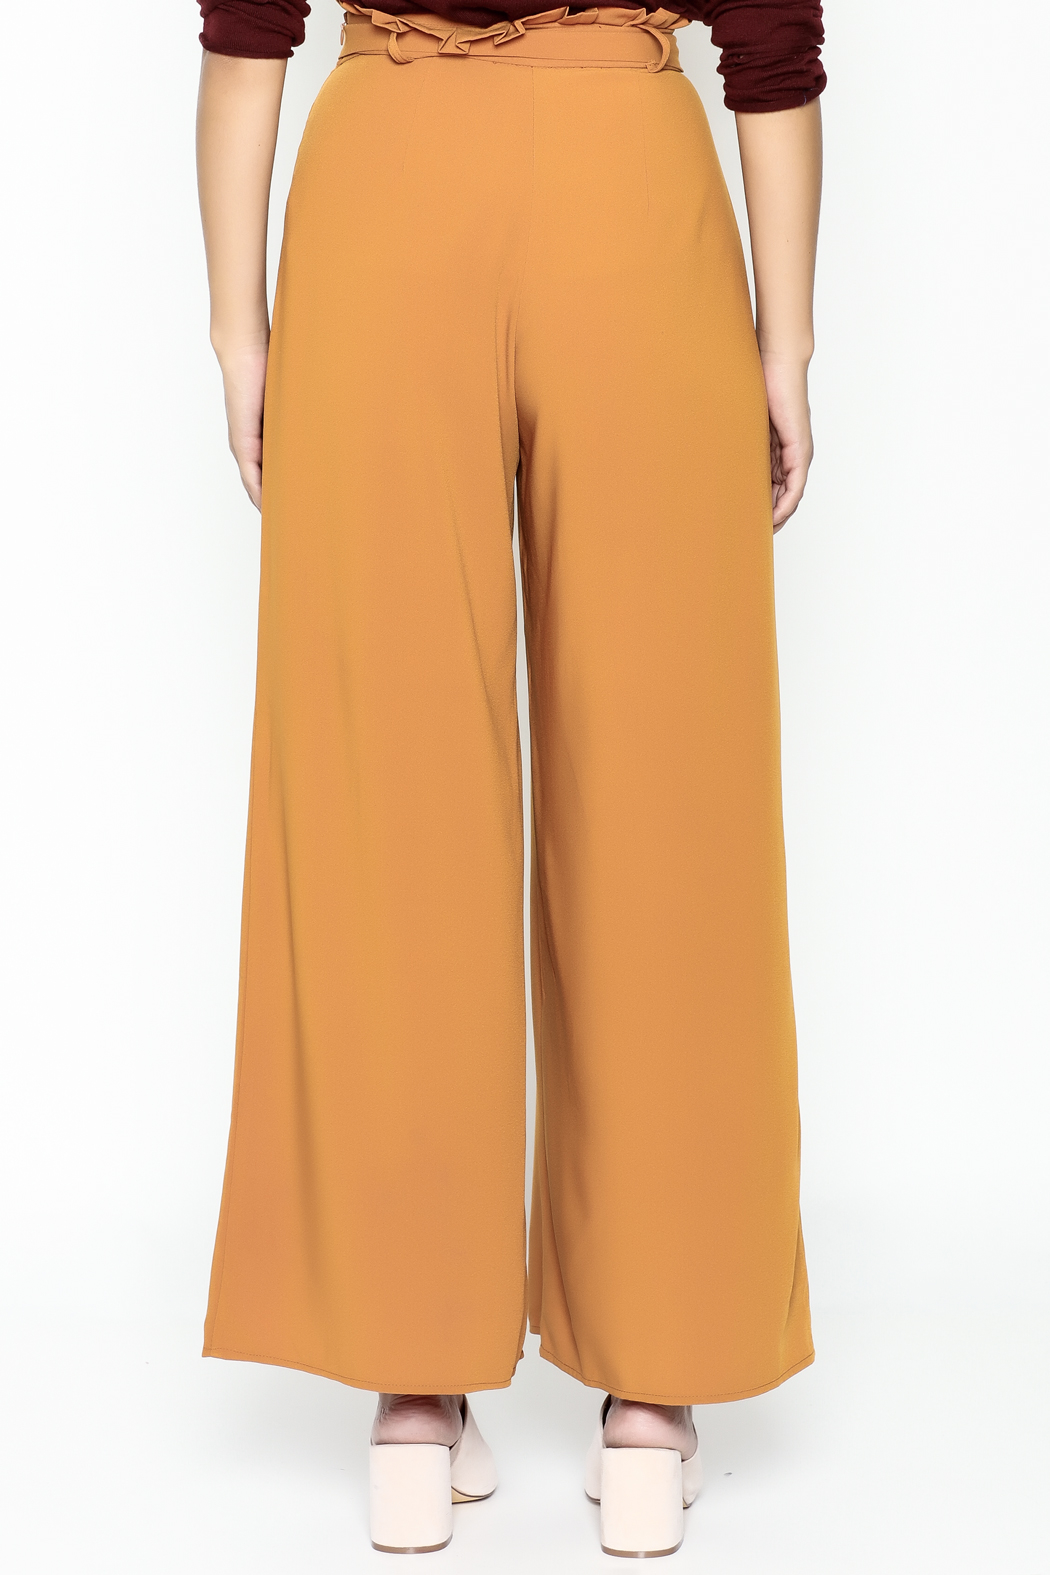 Jealous Tomato Paperbag Waist Pants - Back Cropped Image